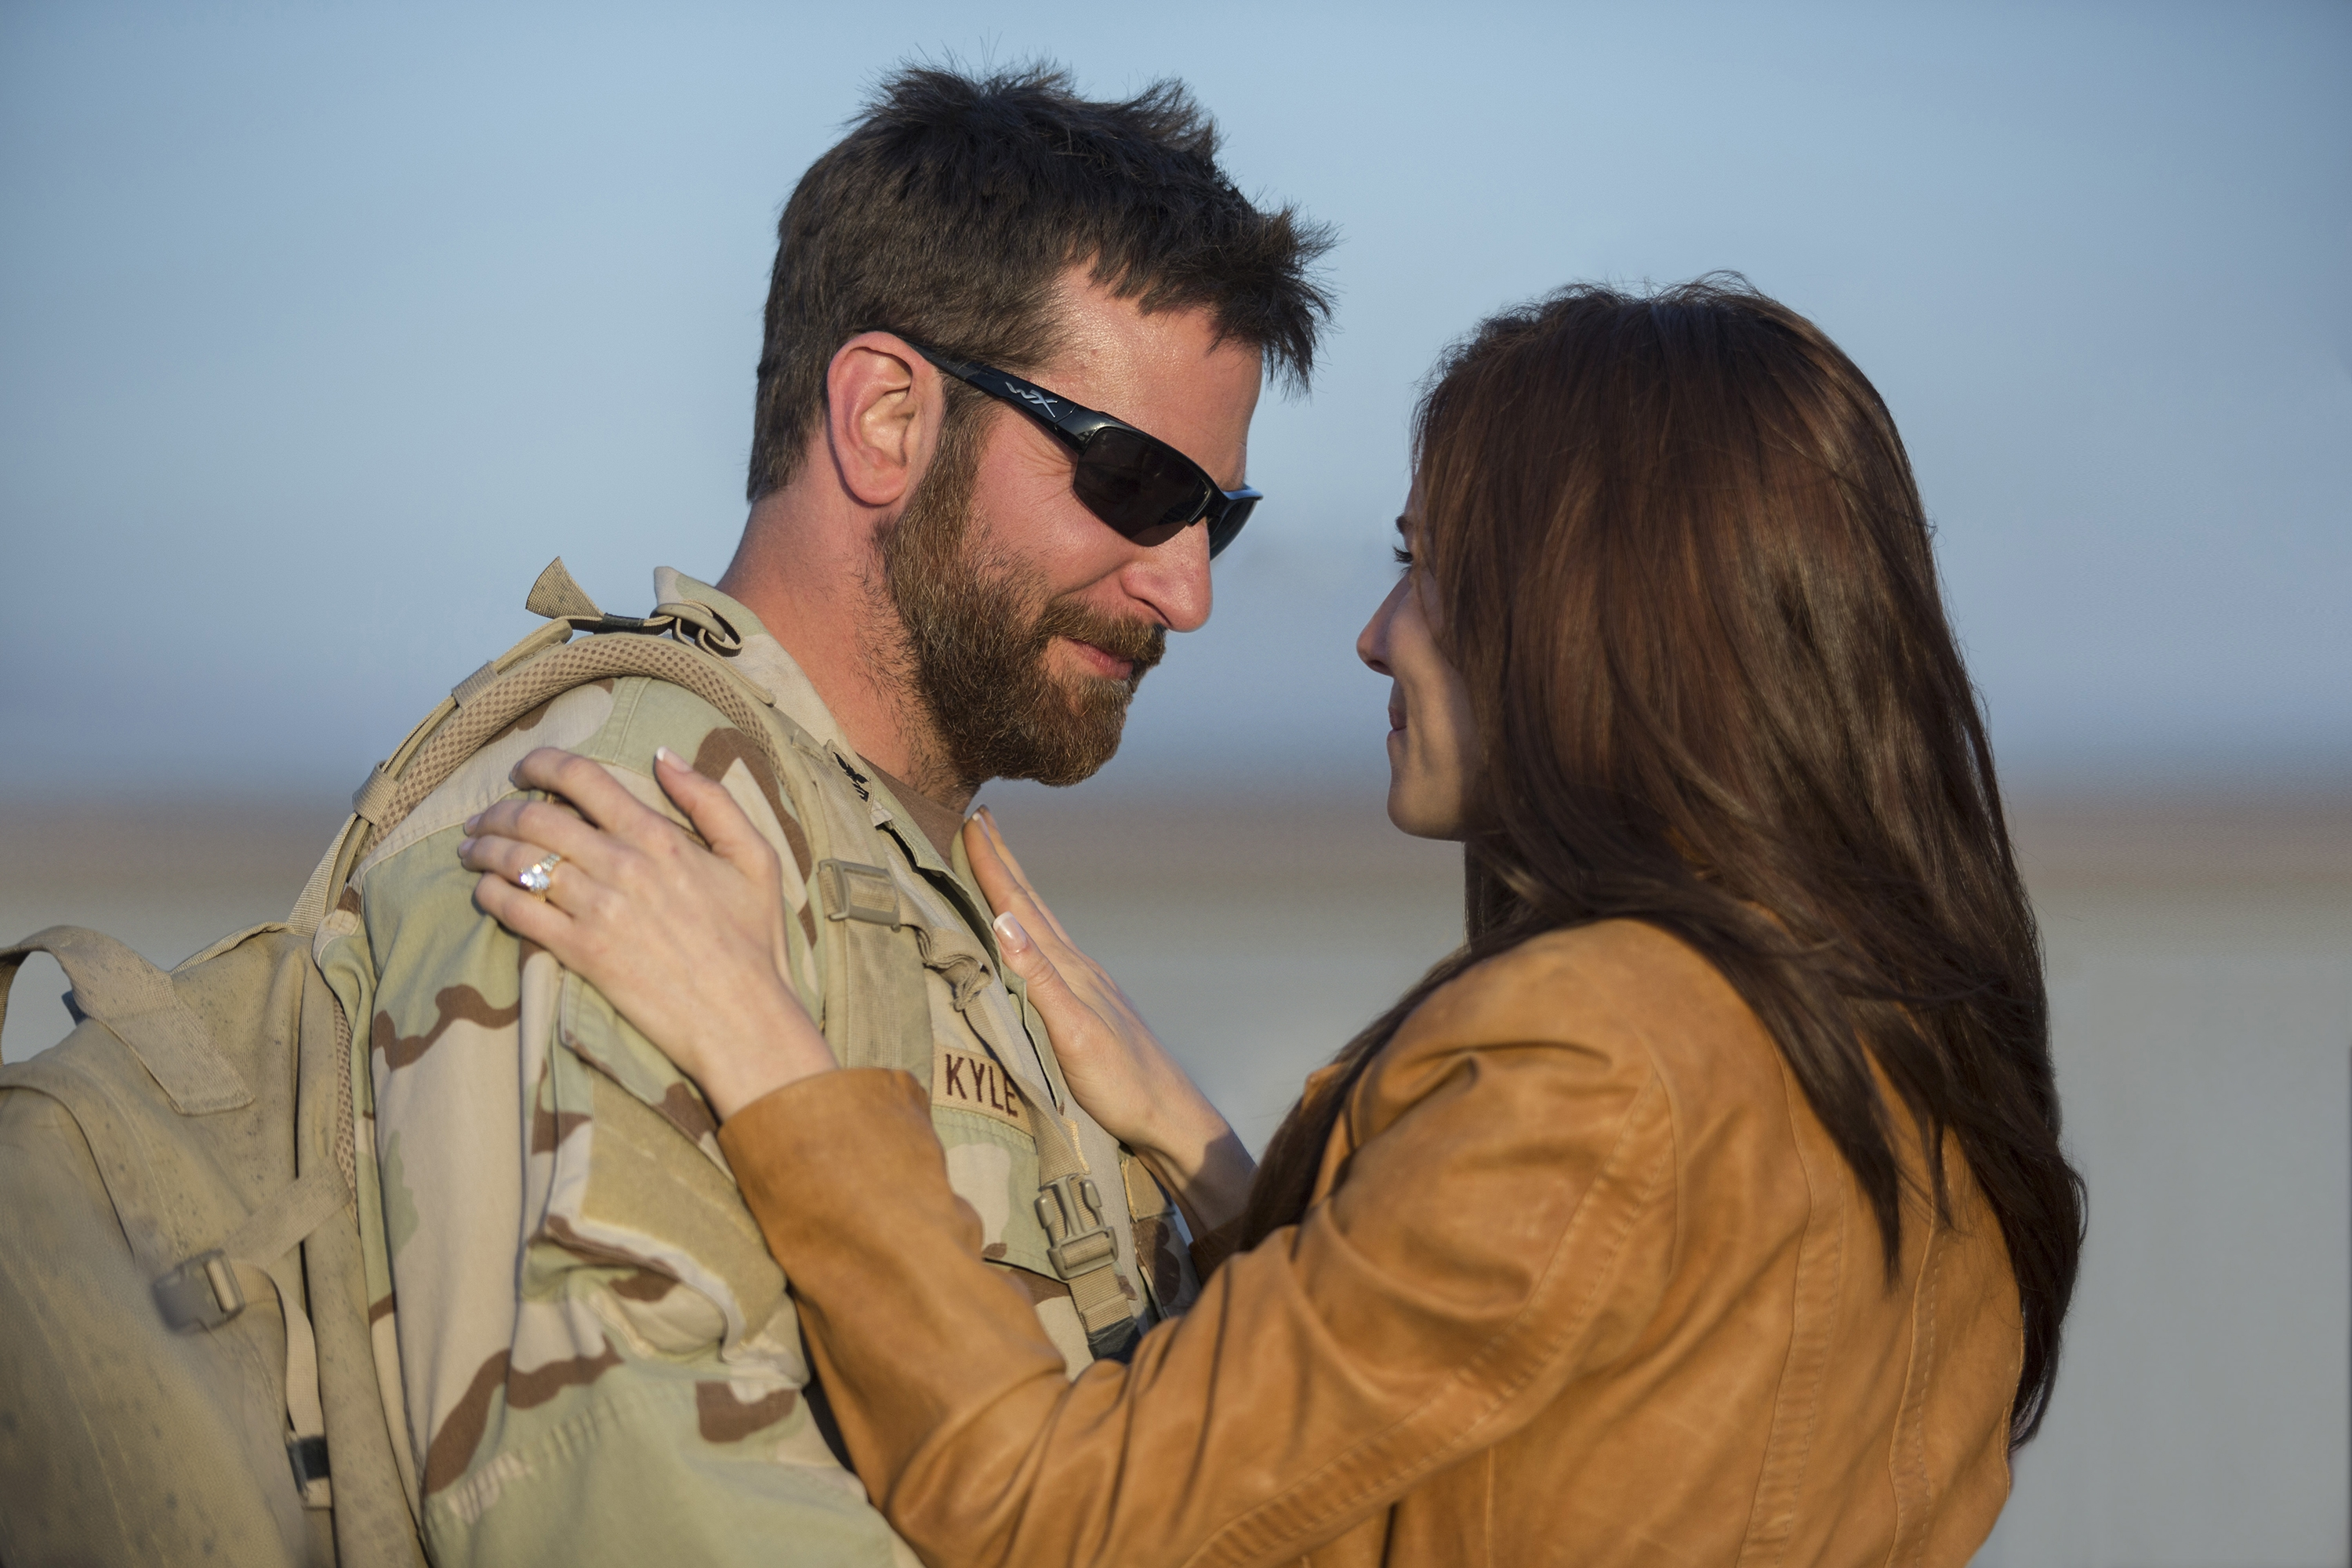 """Bradley Cooper stars as Chris Kyle and Sienna Miller as Taya Kyle in Warner Bros. Pictures' and Village Roadshow Pictures' drama """"American Sniper."""""""